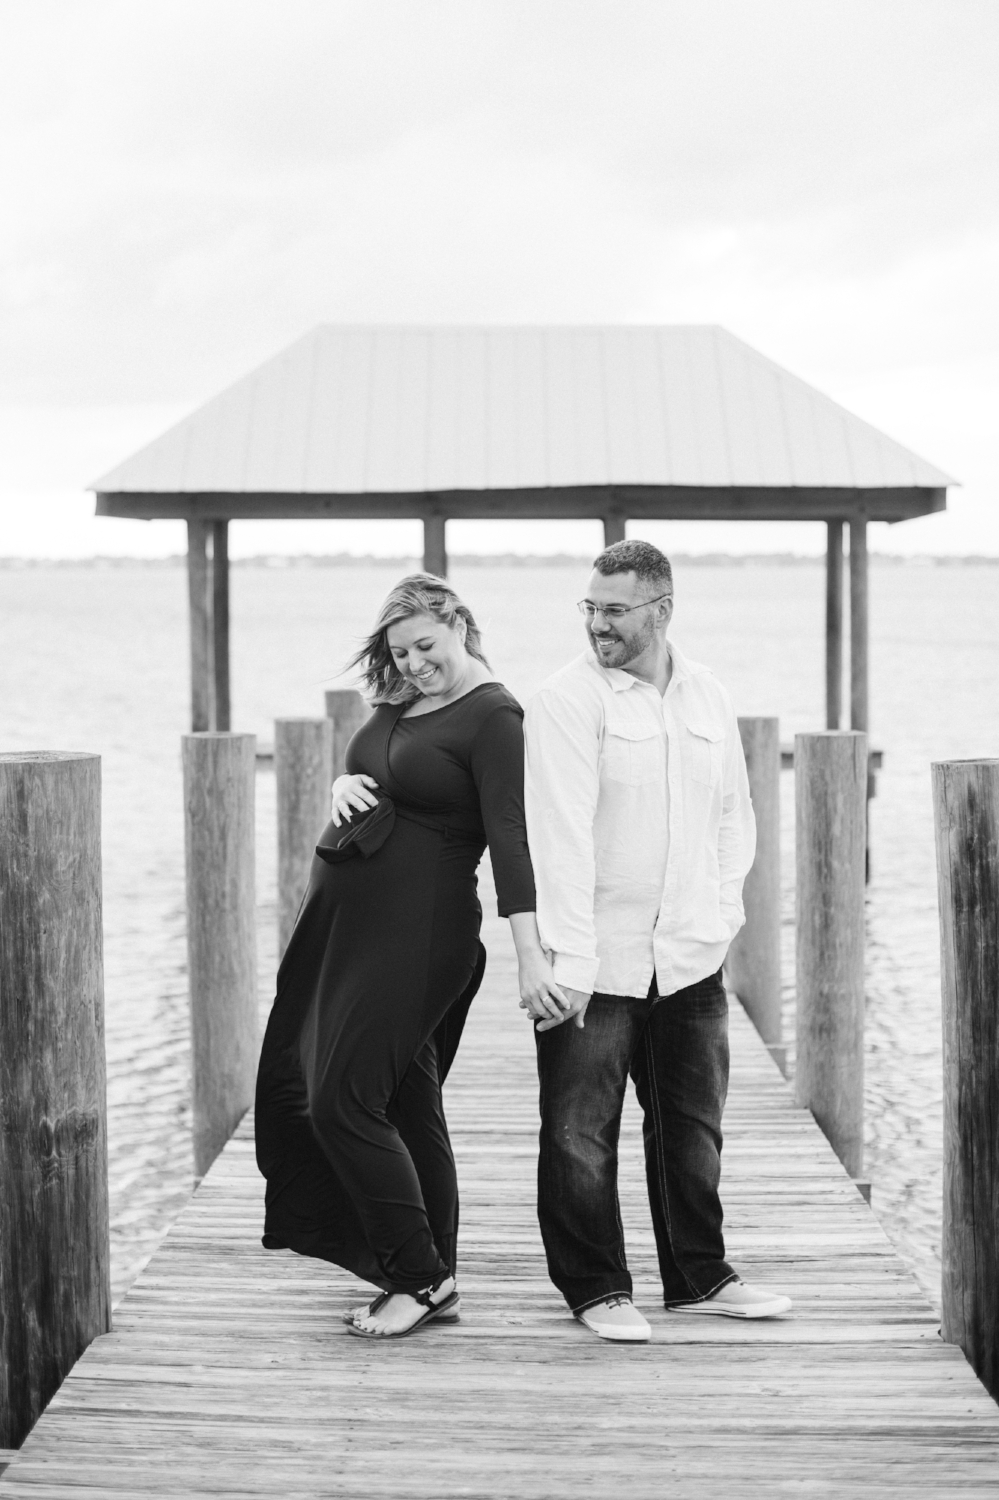 south-florida-maternity-photographer-5.jpg